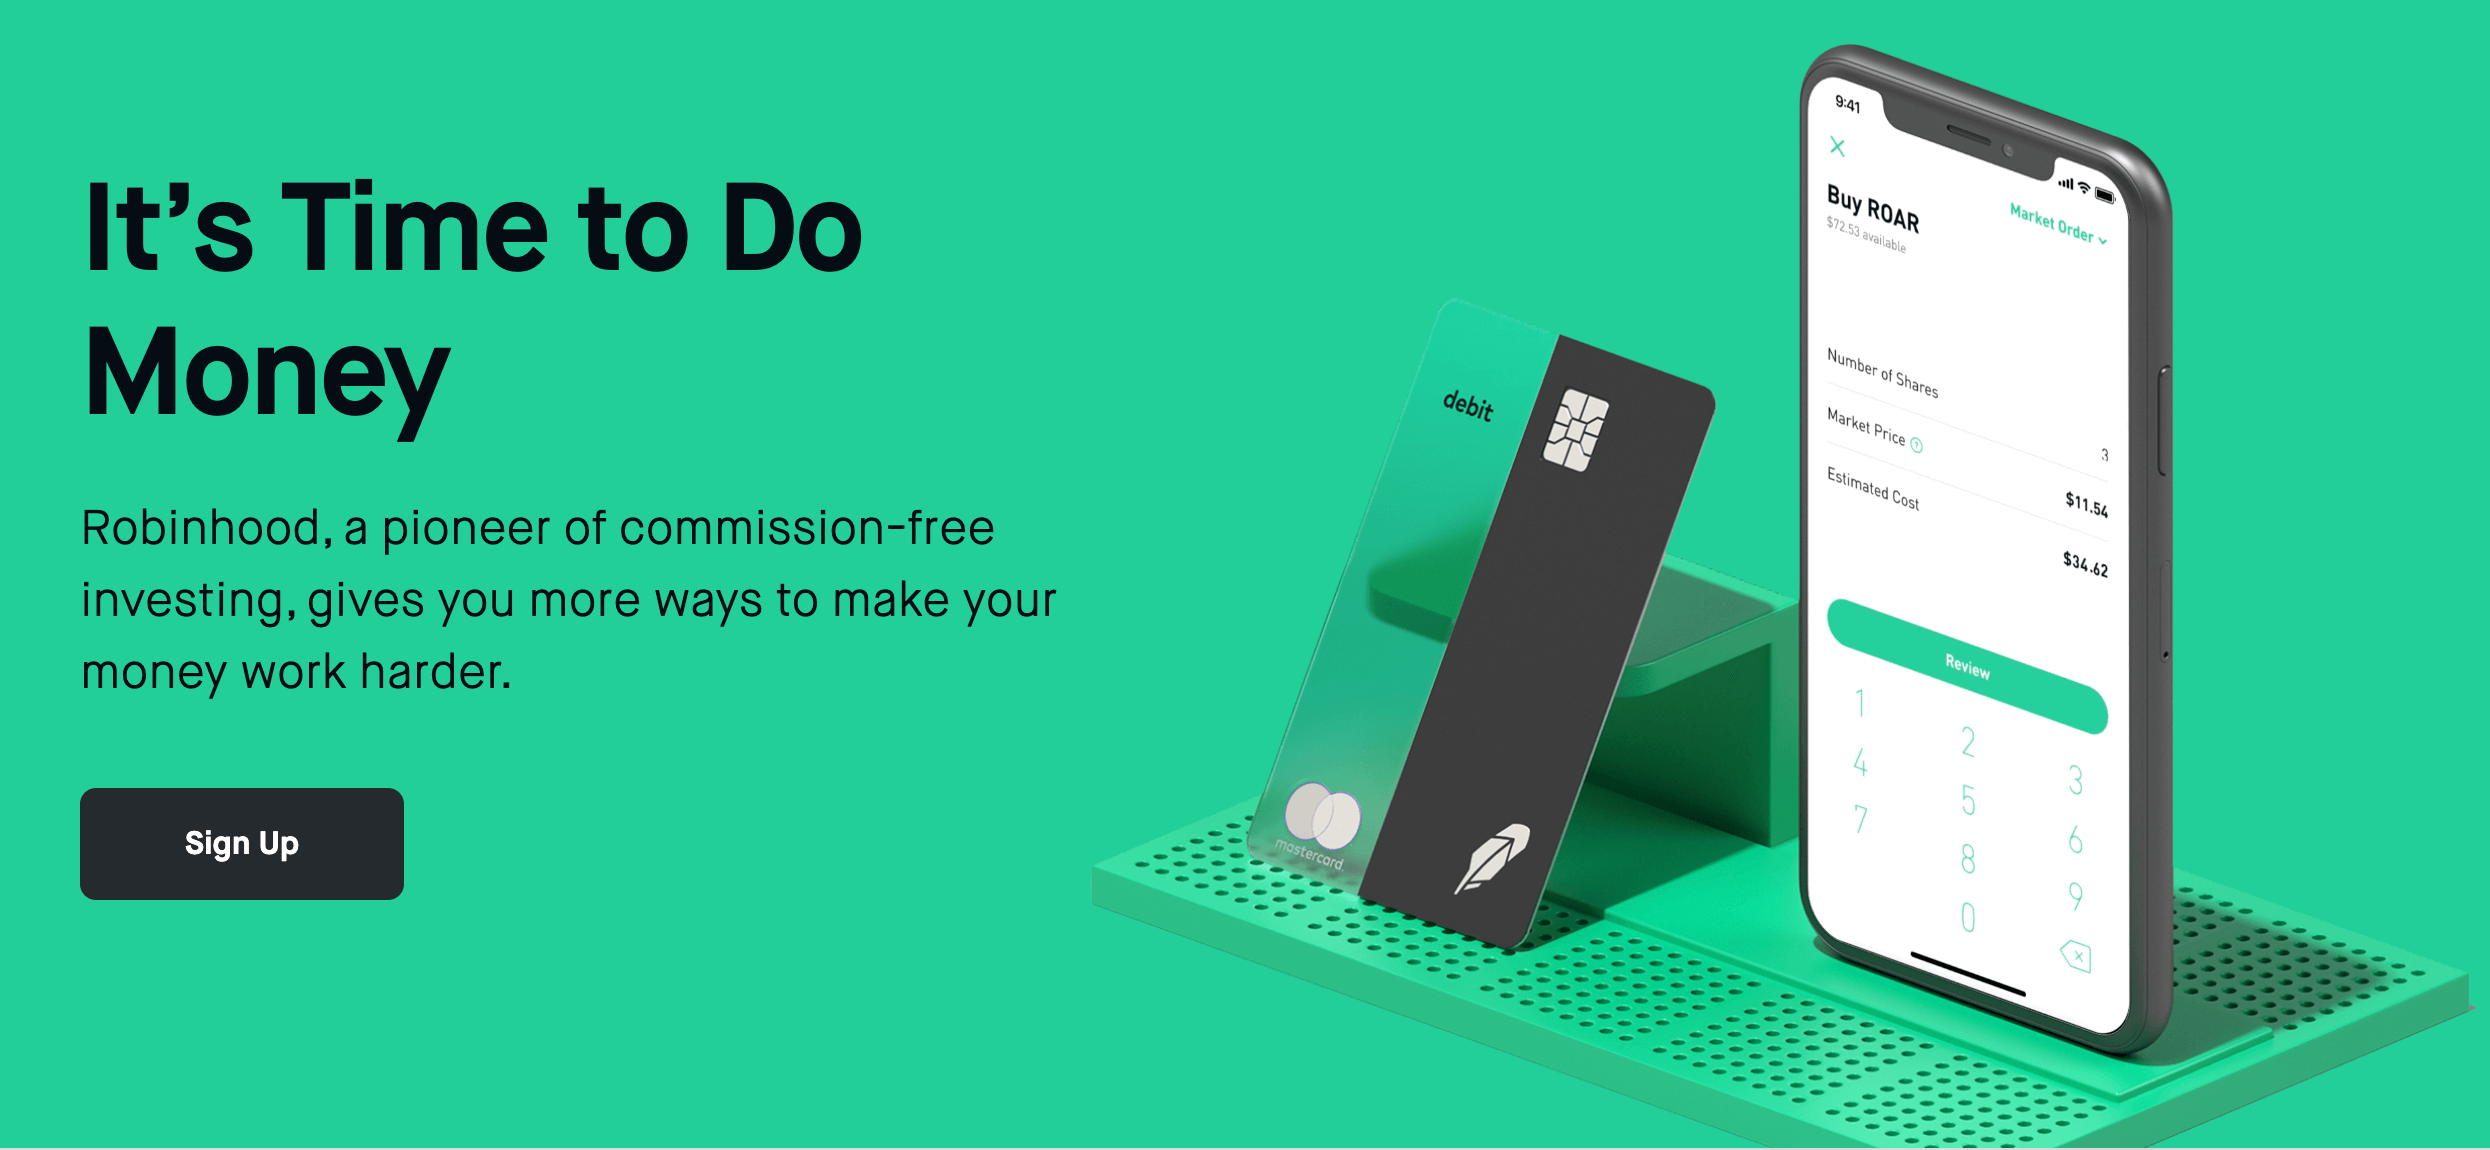 7 Of The Best Investing Apps For People On The Go - Robinhood